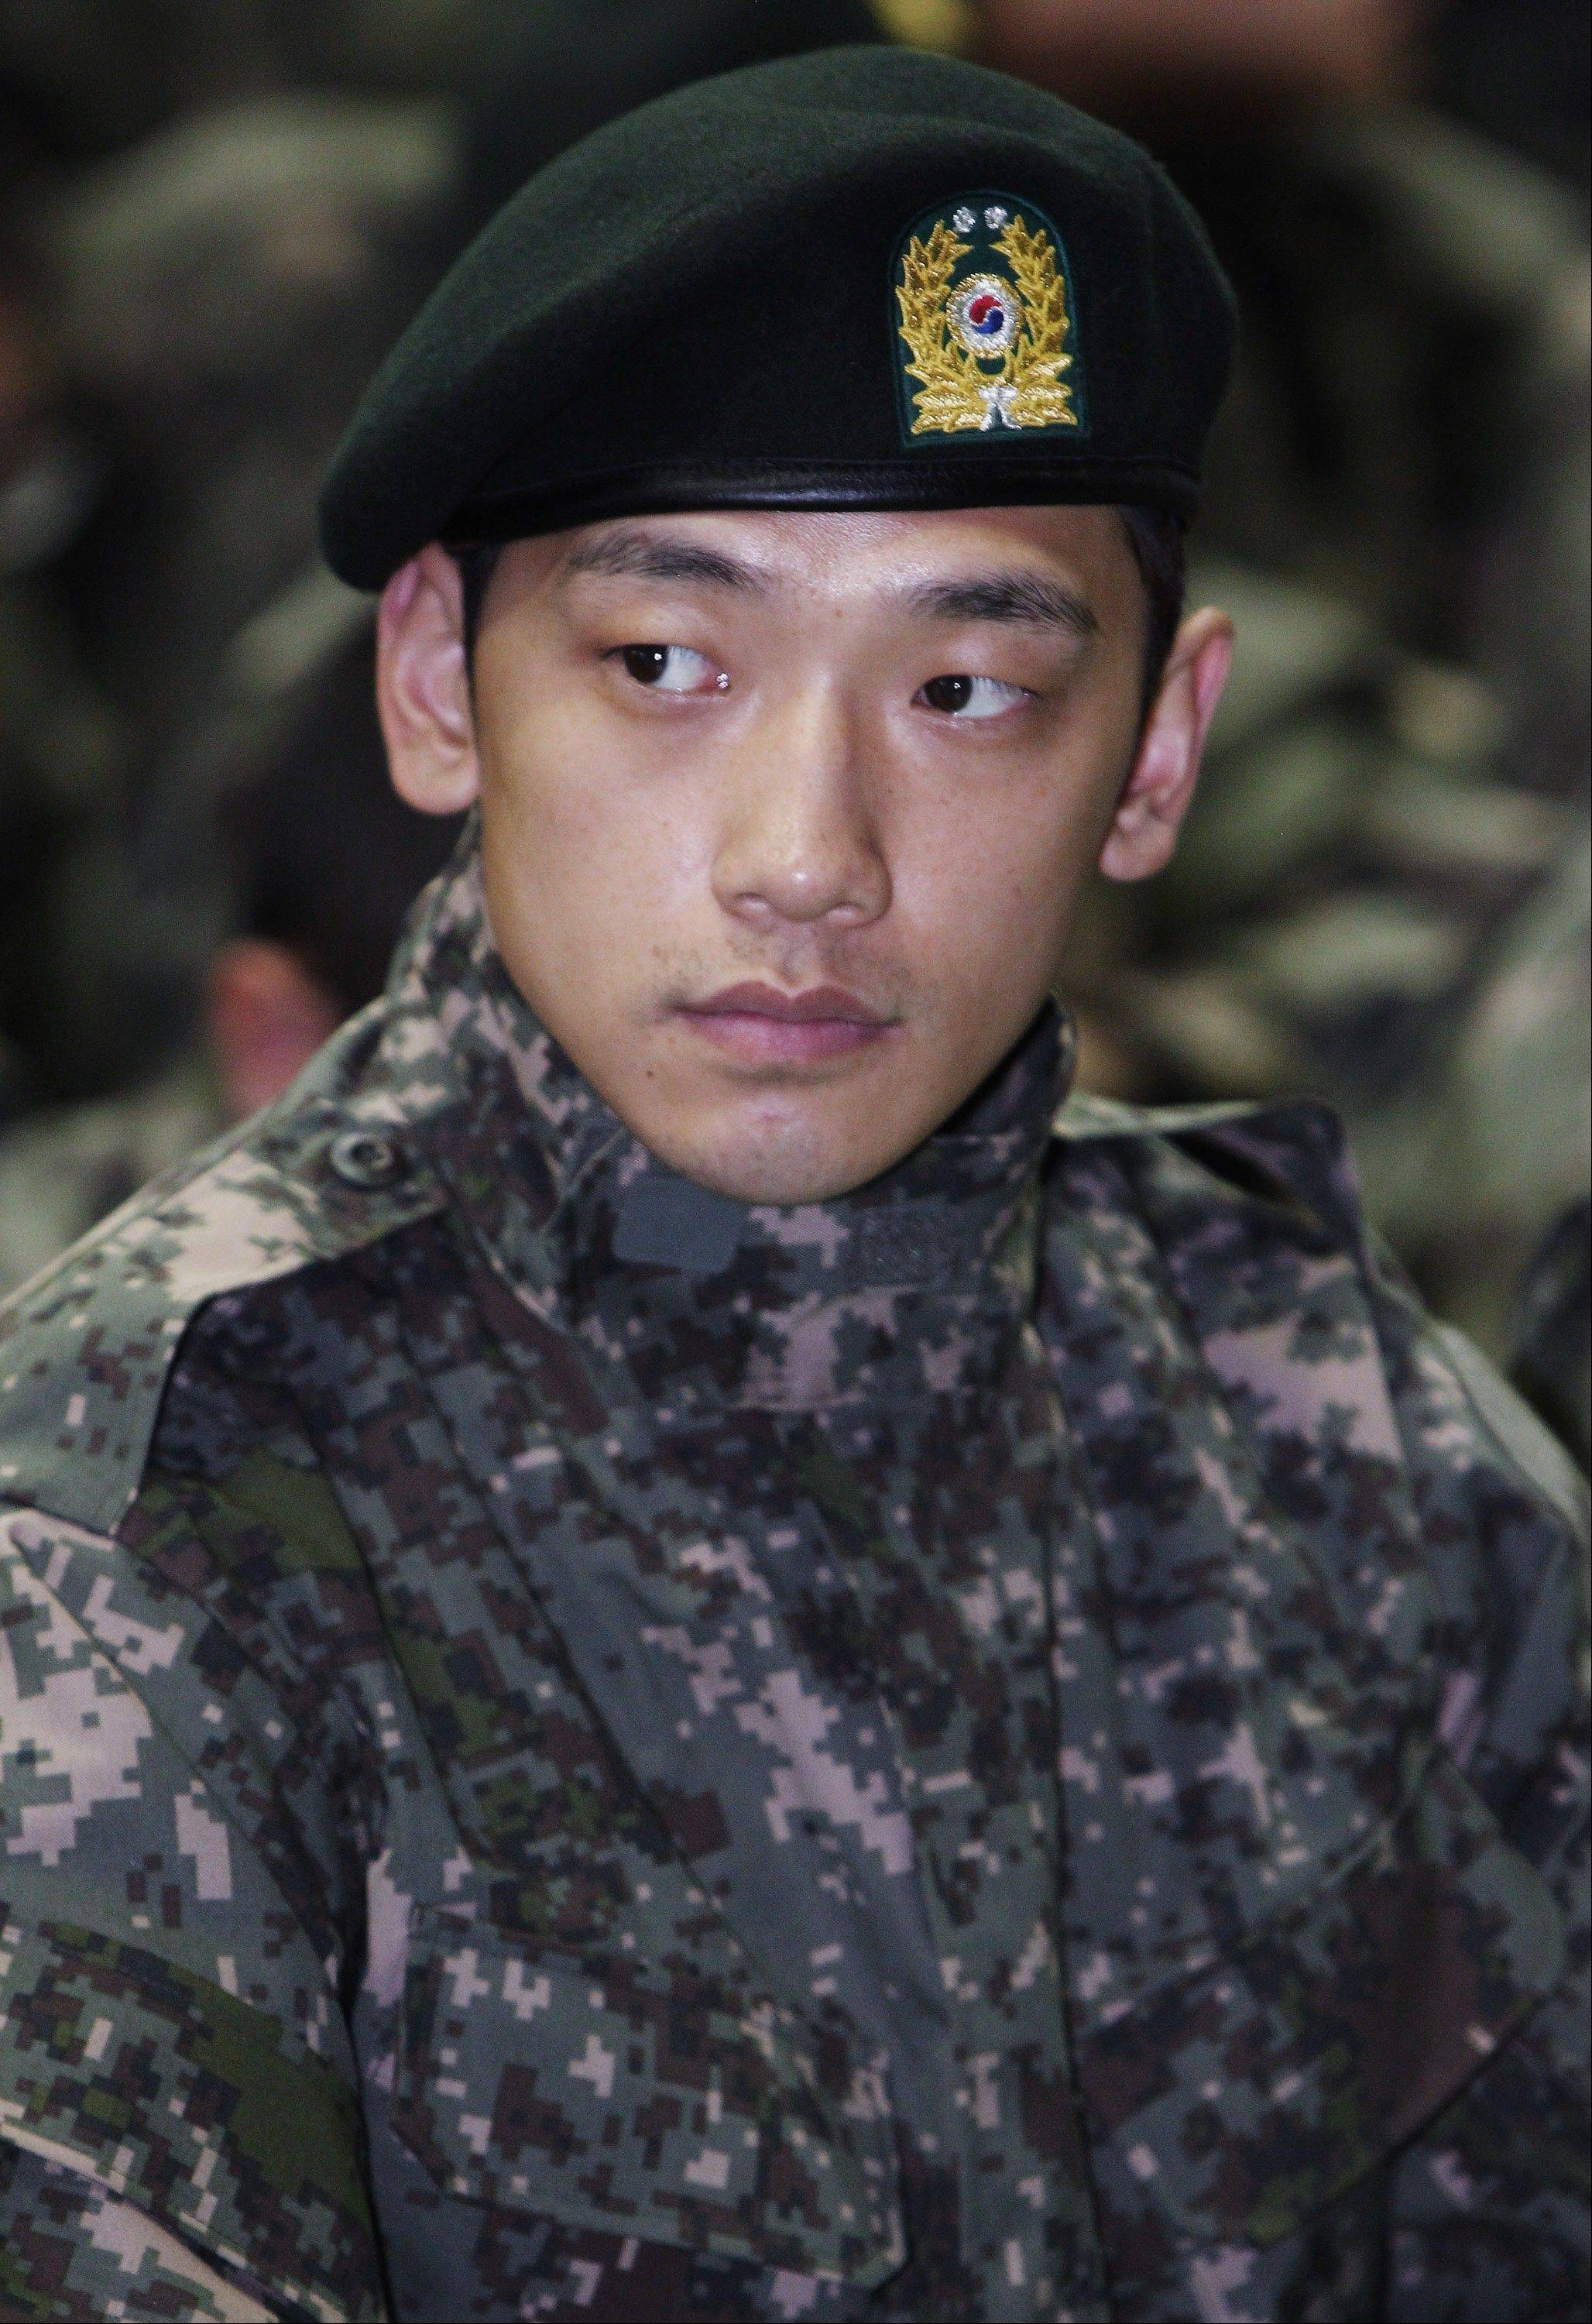 South Korean pop singer Rain is facing questions after paparazzi photos showed him out on the town with a top actress. Seoul�s Defense Ministry said Wednesday it is investigating whether Rain broke military rules by meeting actress Kim Tae-hee while on duty.